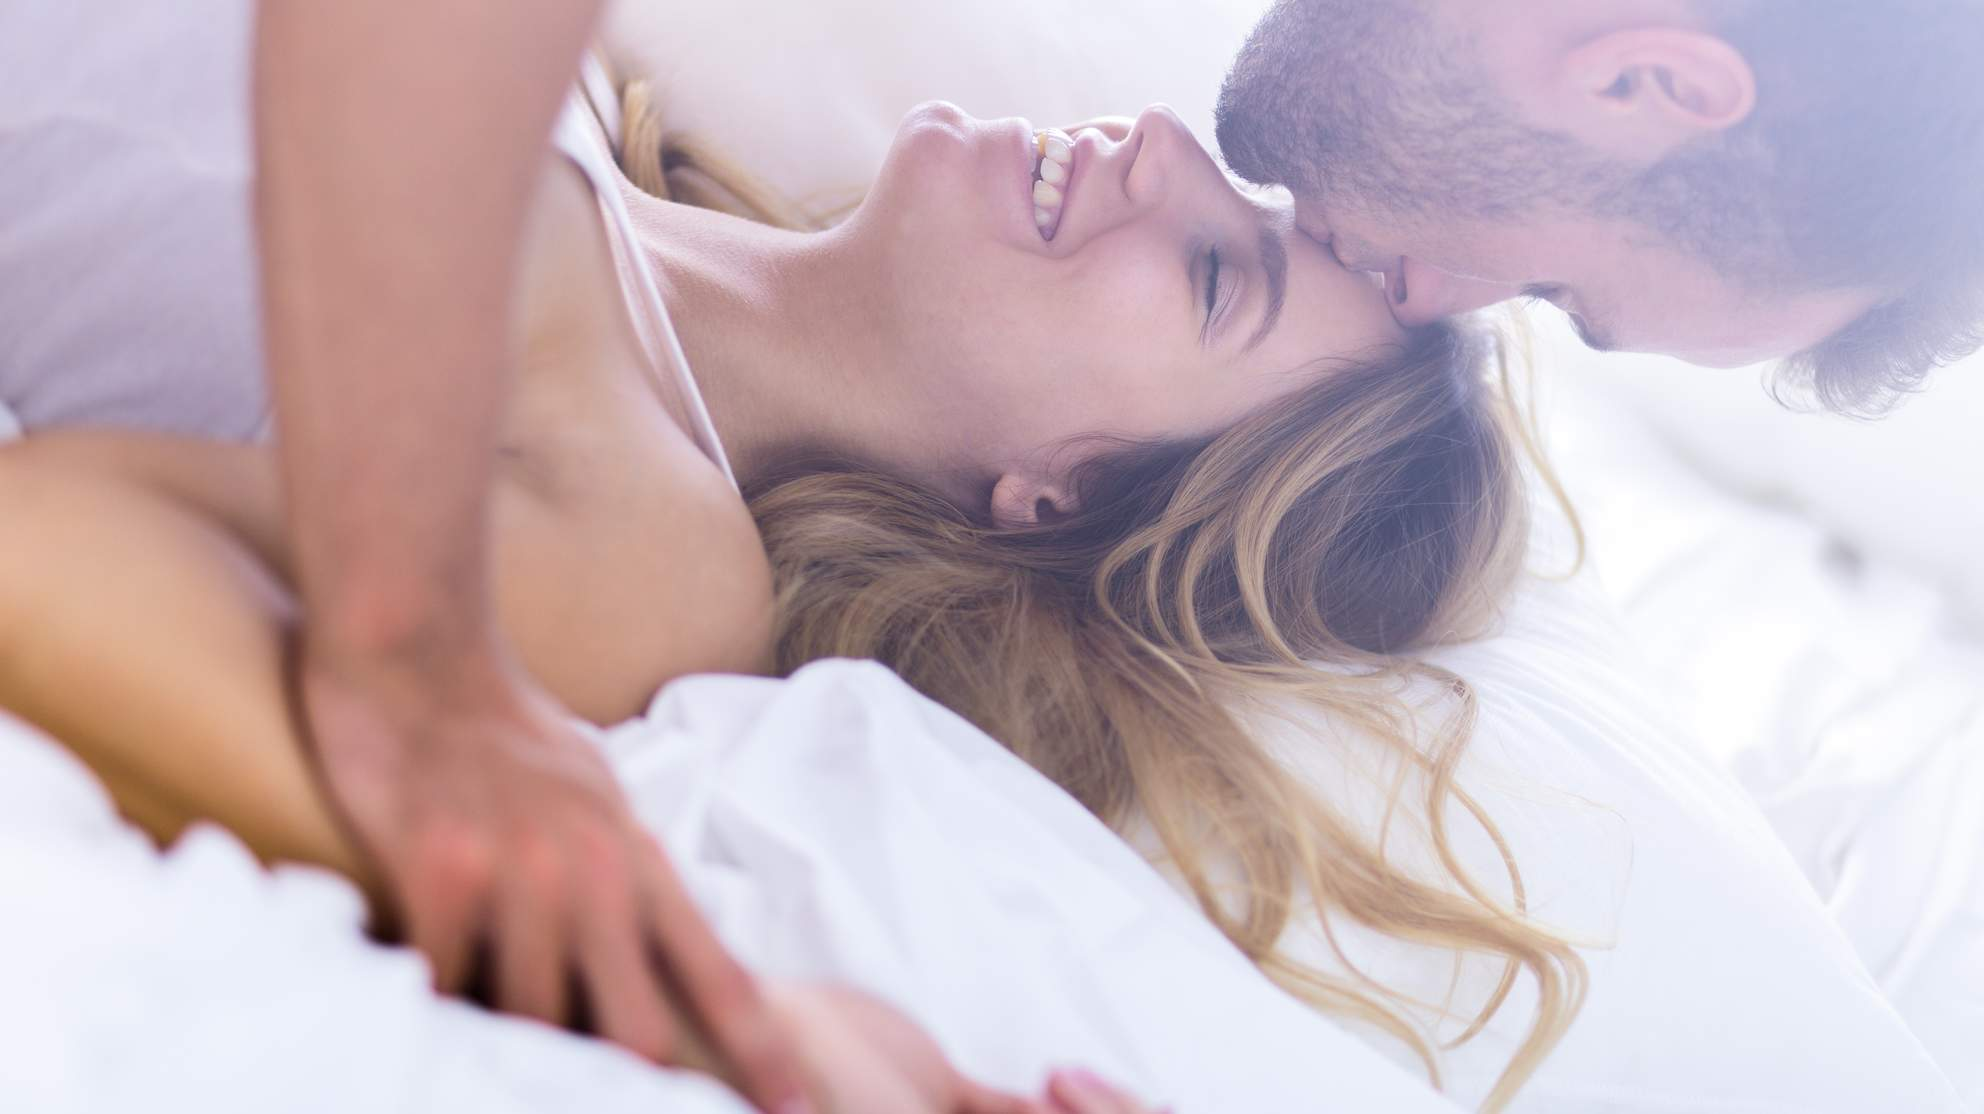 9Sex Resolutions Every Woman Should Make for the New Year